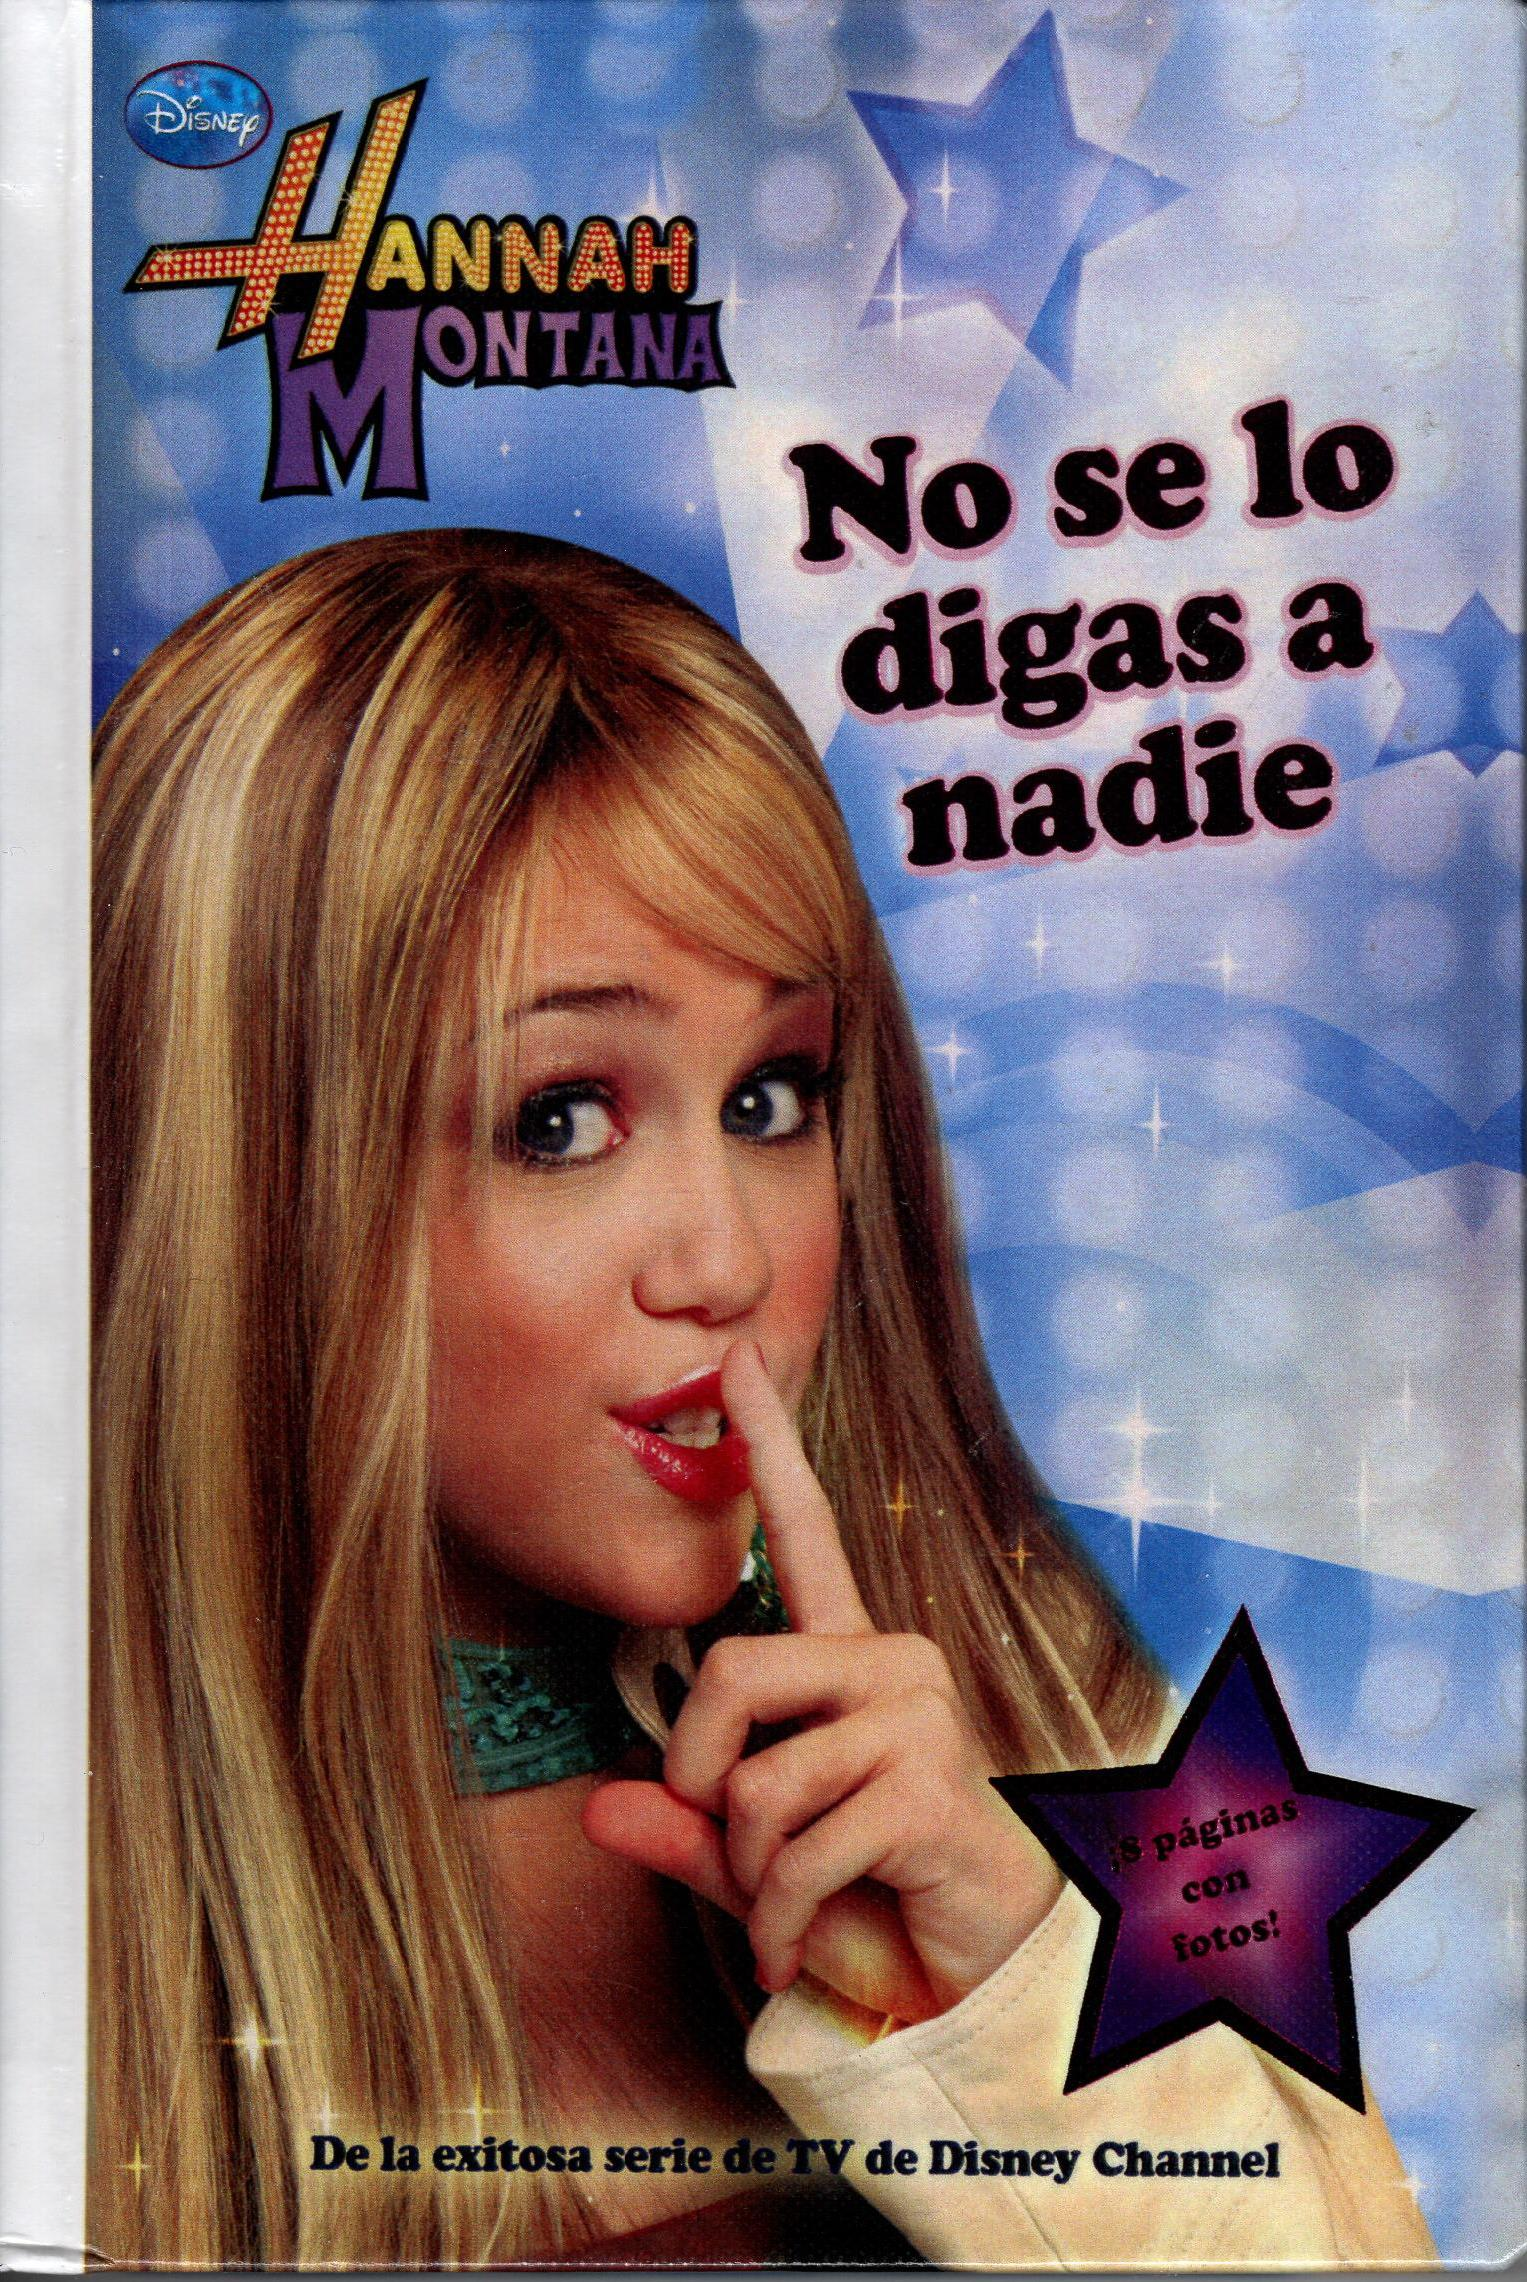 Image for MONTANA, HANNAH: NO SE LO DIGAS A NADIE